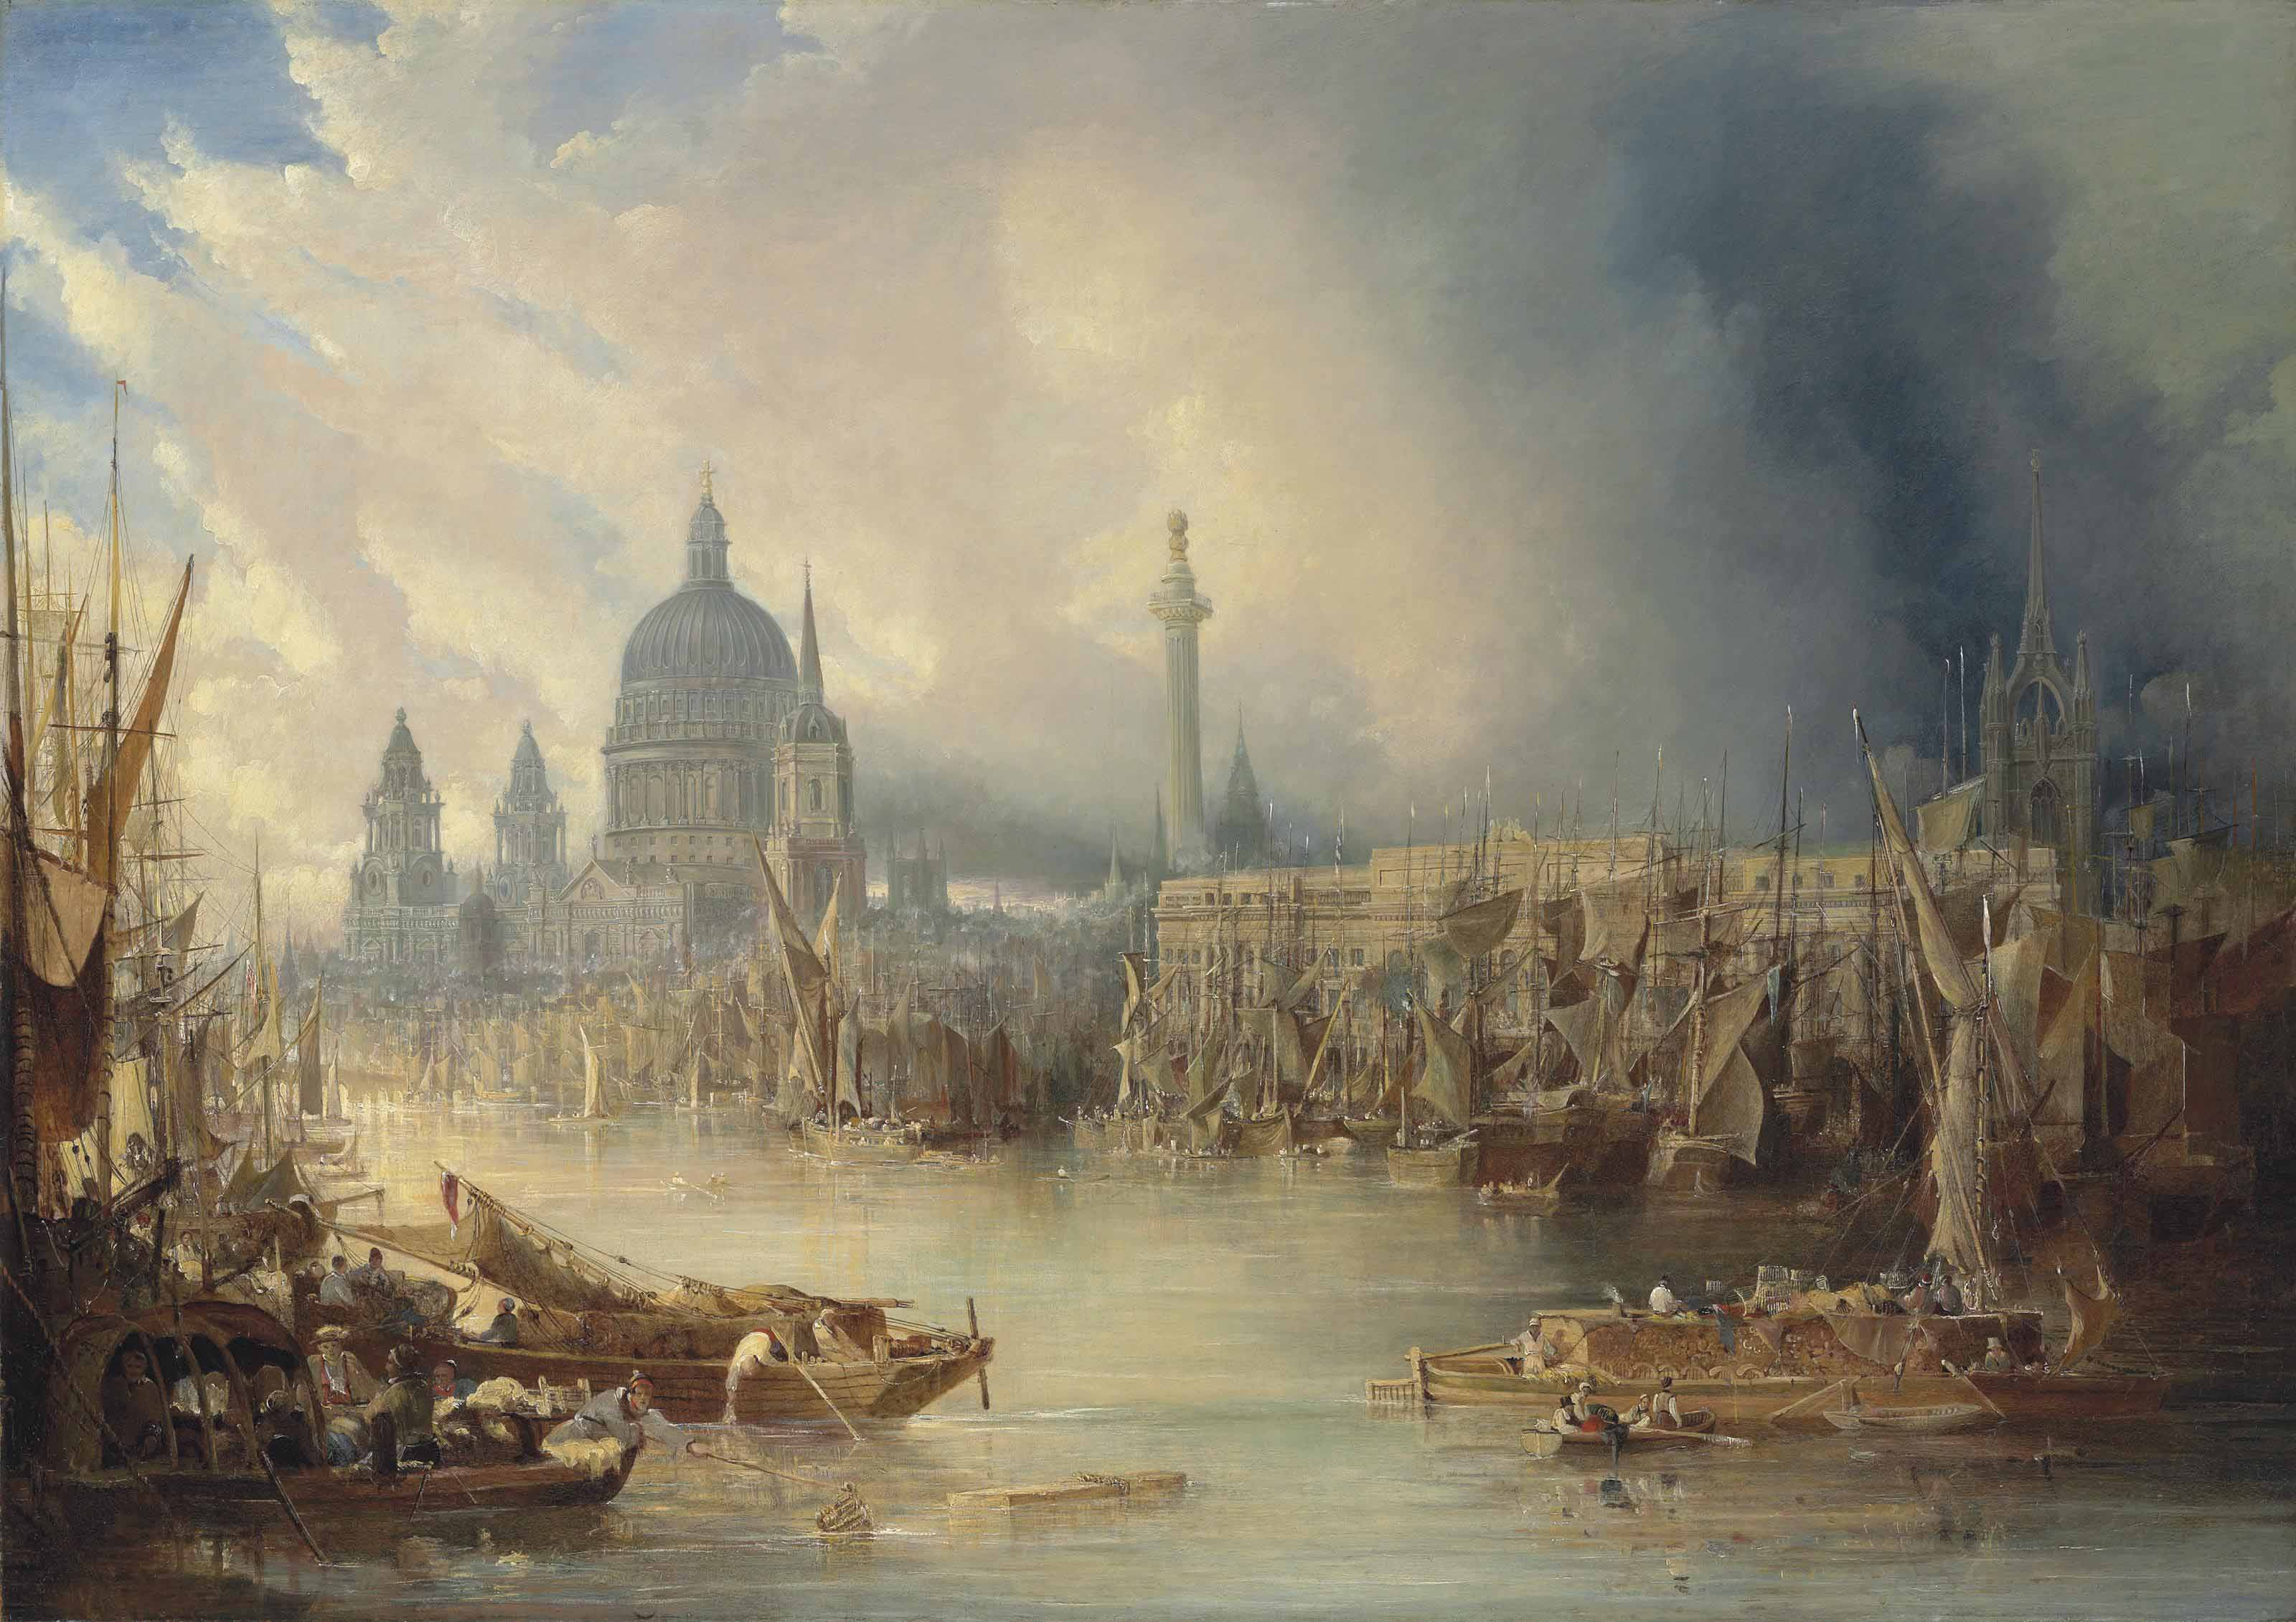 View of St Paul's Cathedral and the Monument from the south bank of the River Thames